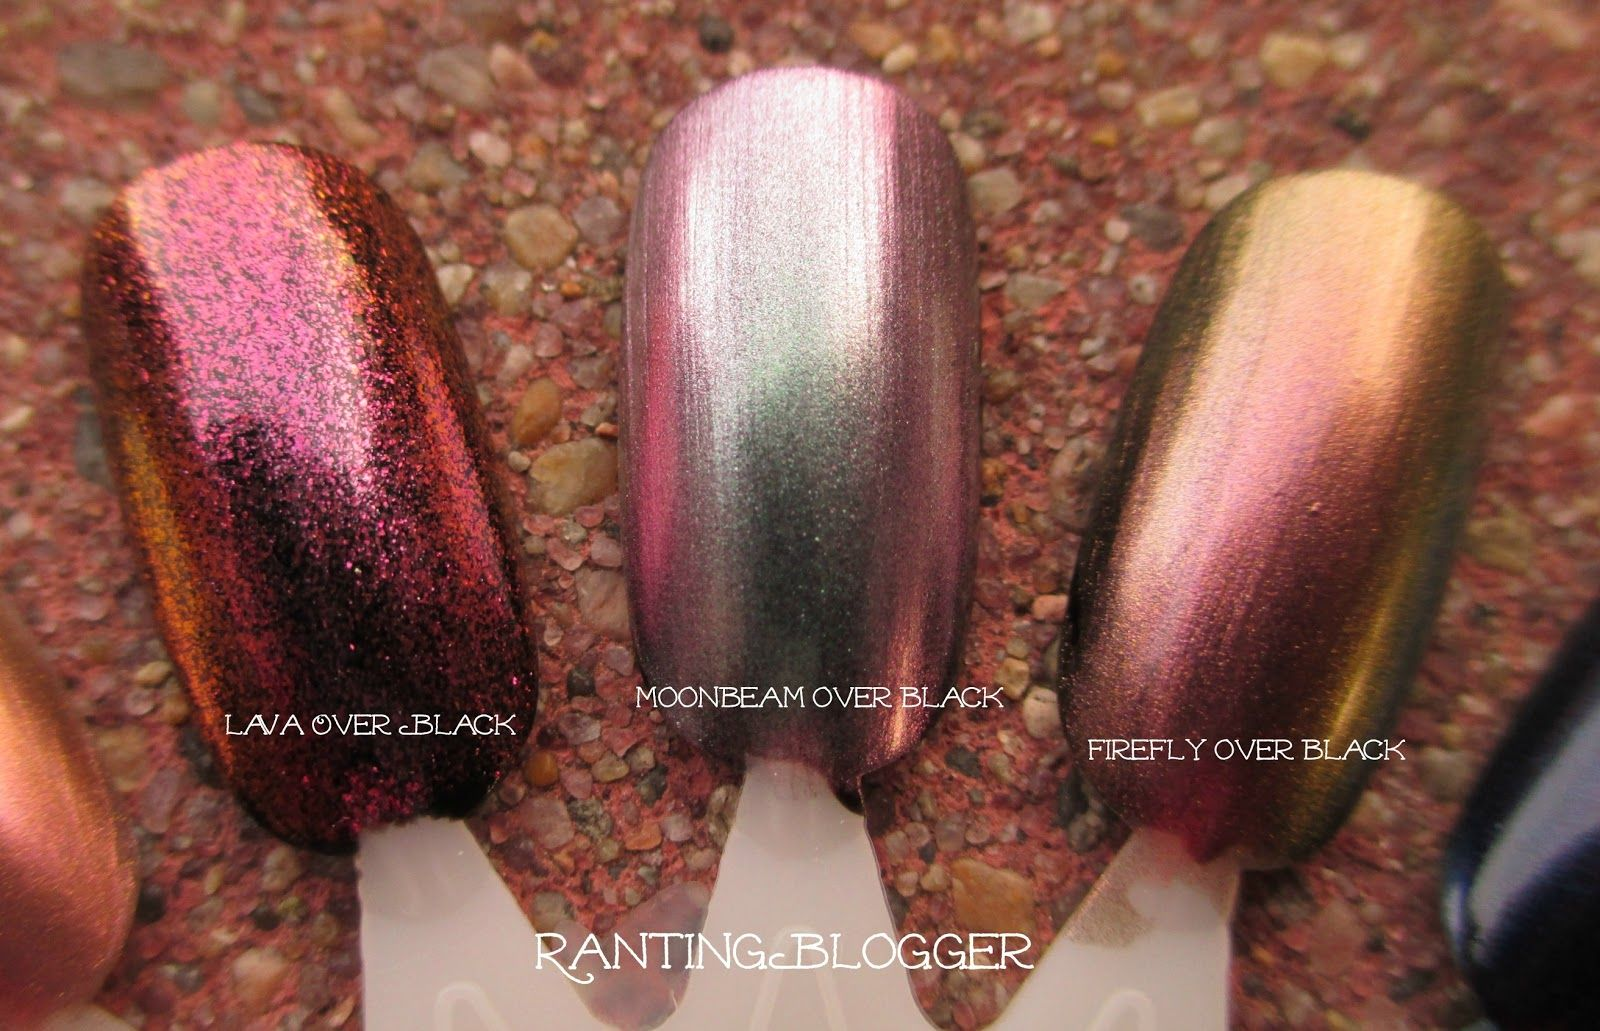 Sally Hansen Lustre Shine duochrome nail polishes layered over black ...